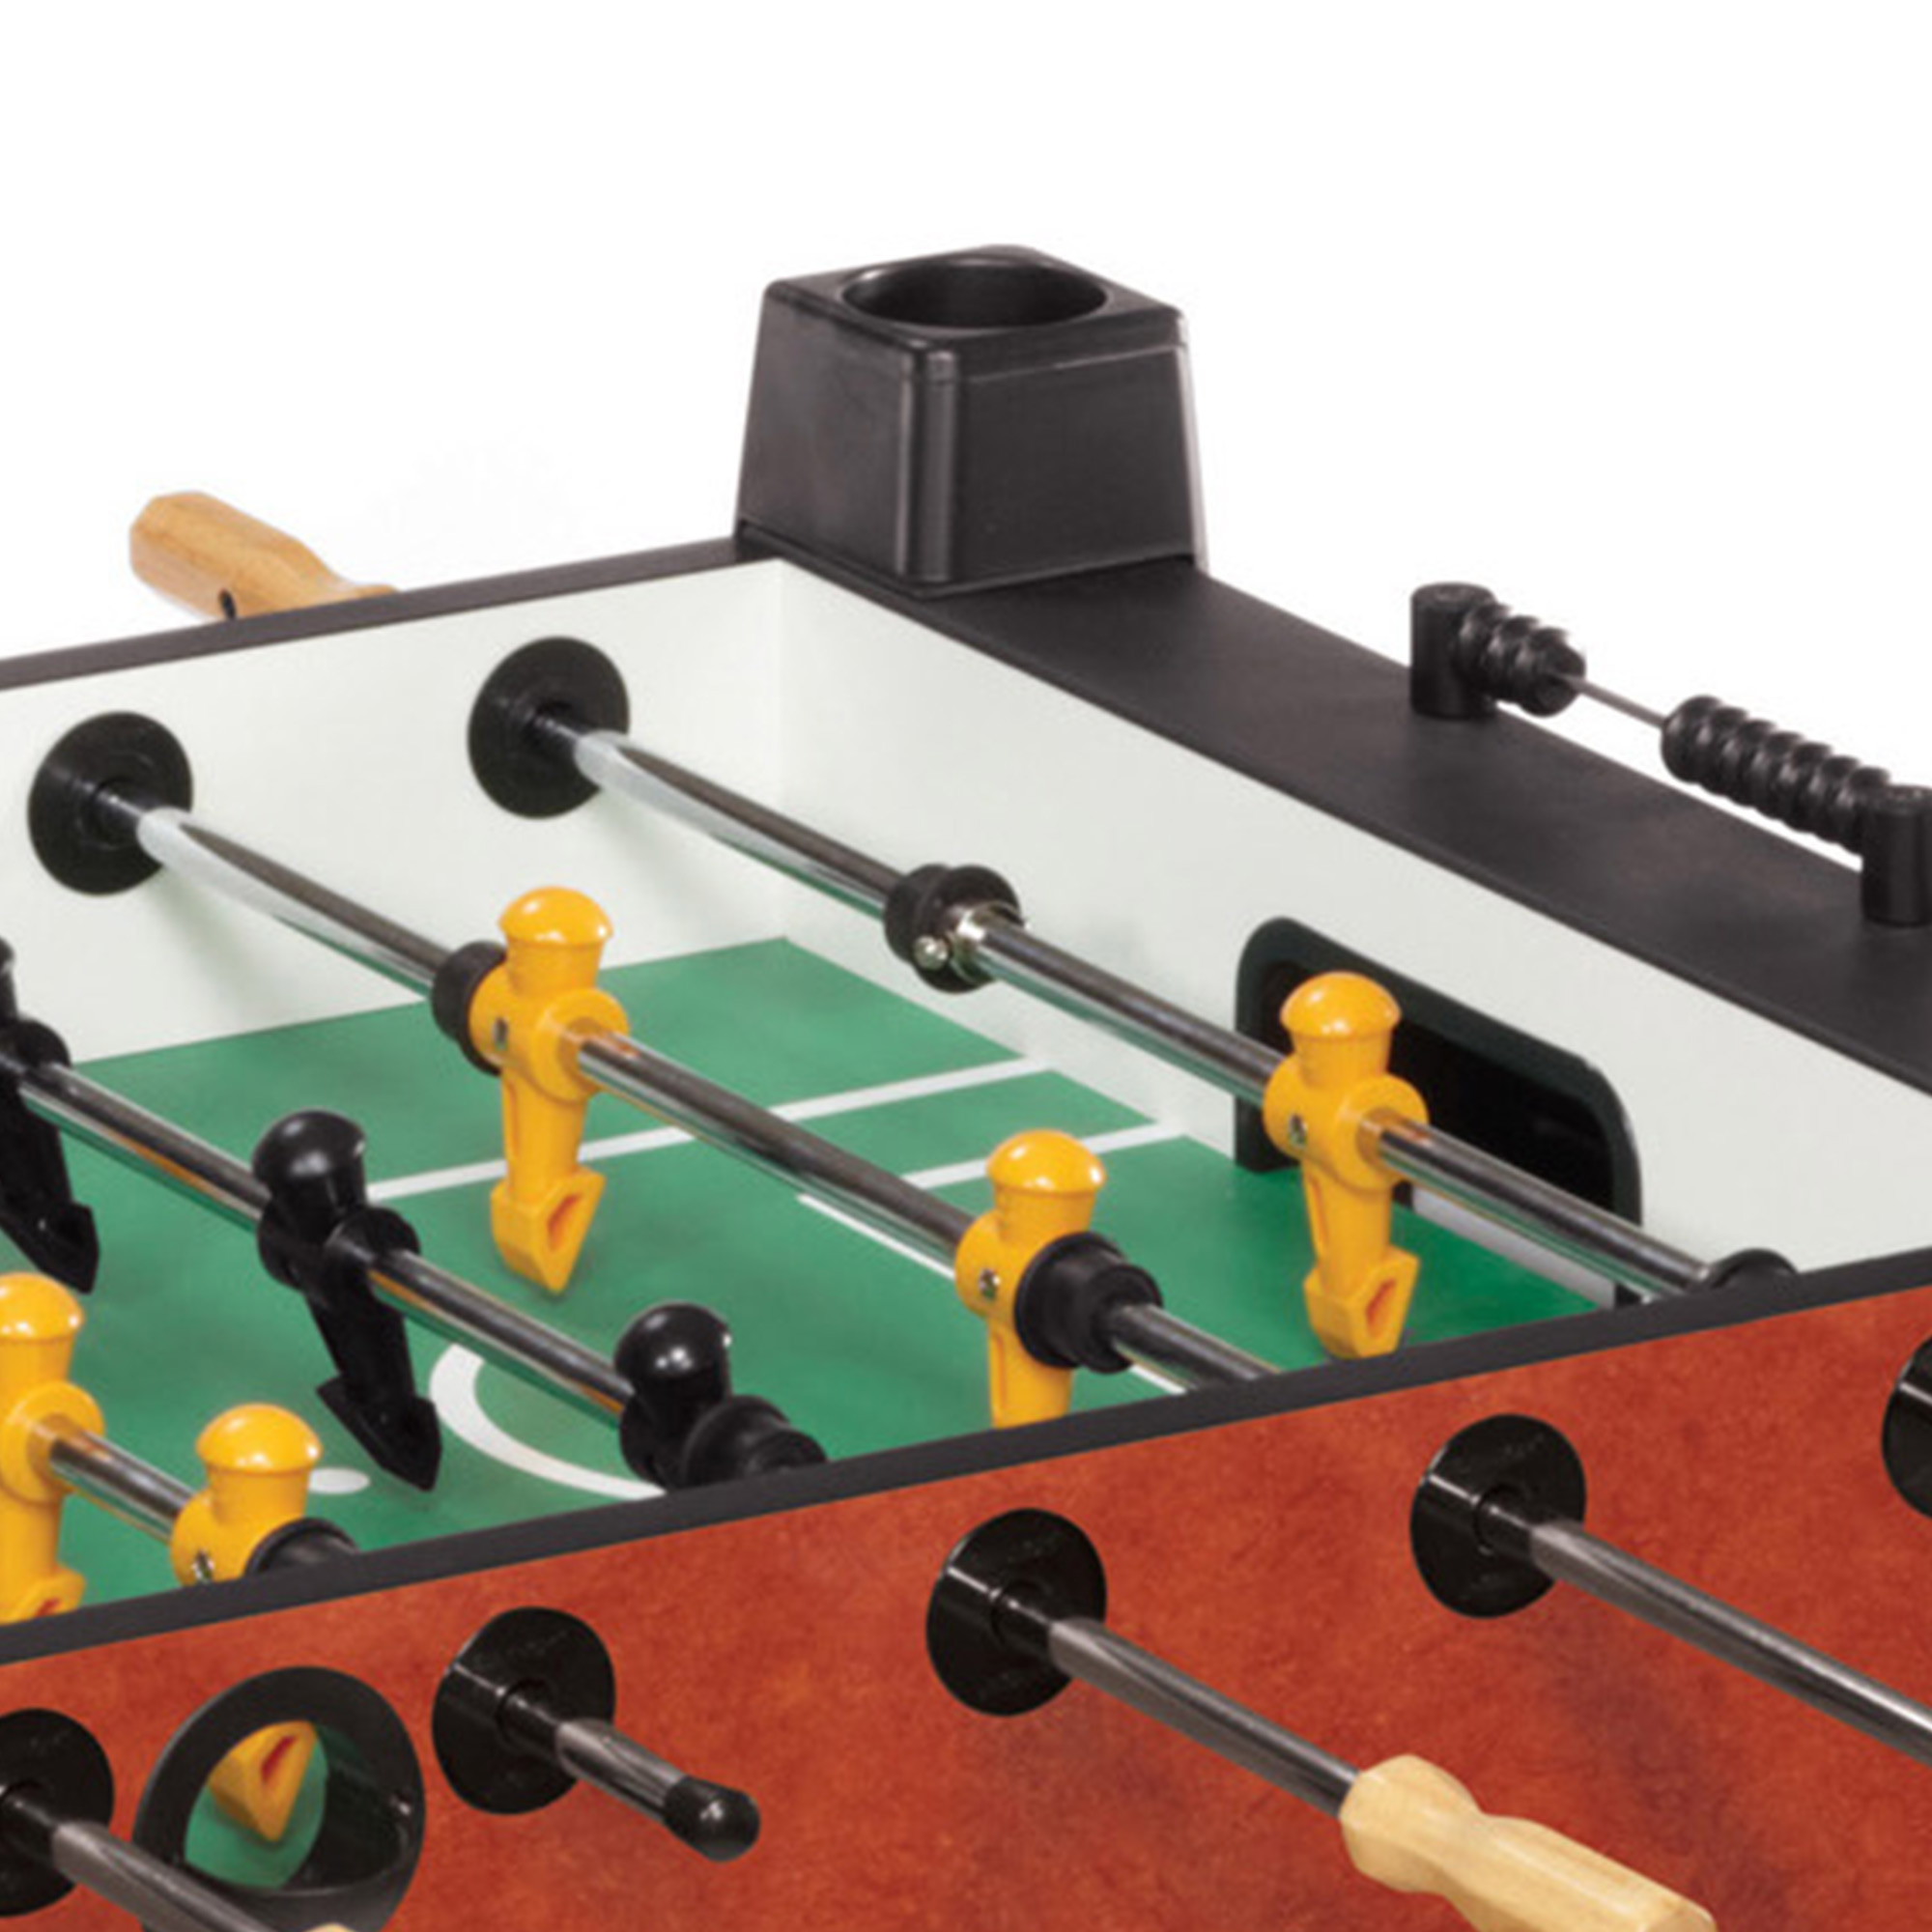 Signature Foosball Table Rods